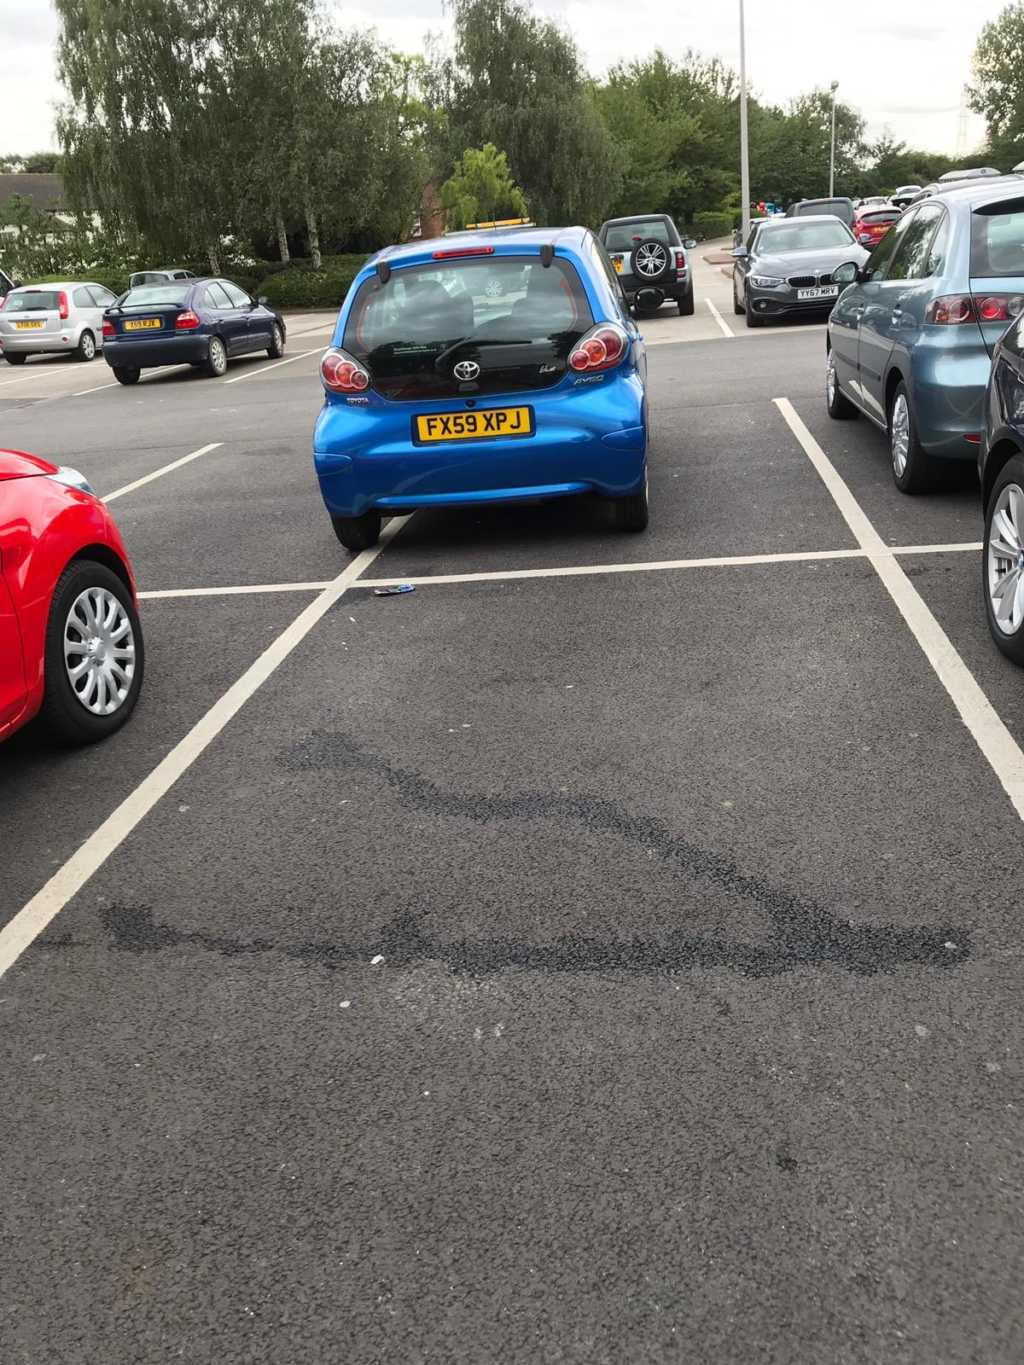 FX59 XPJ is an Inconsiderate Parker